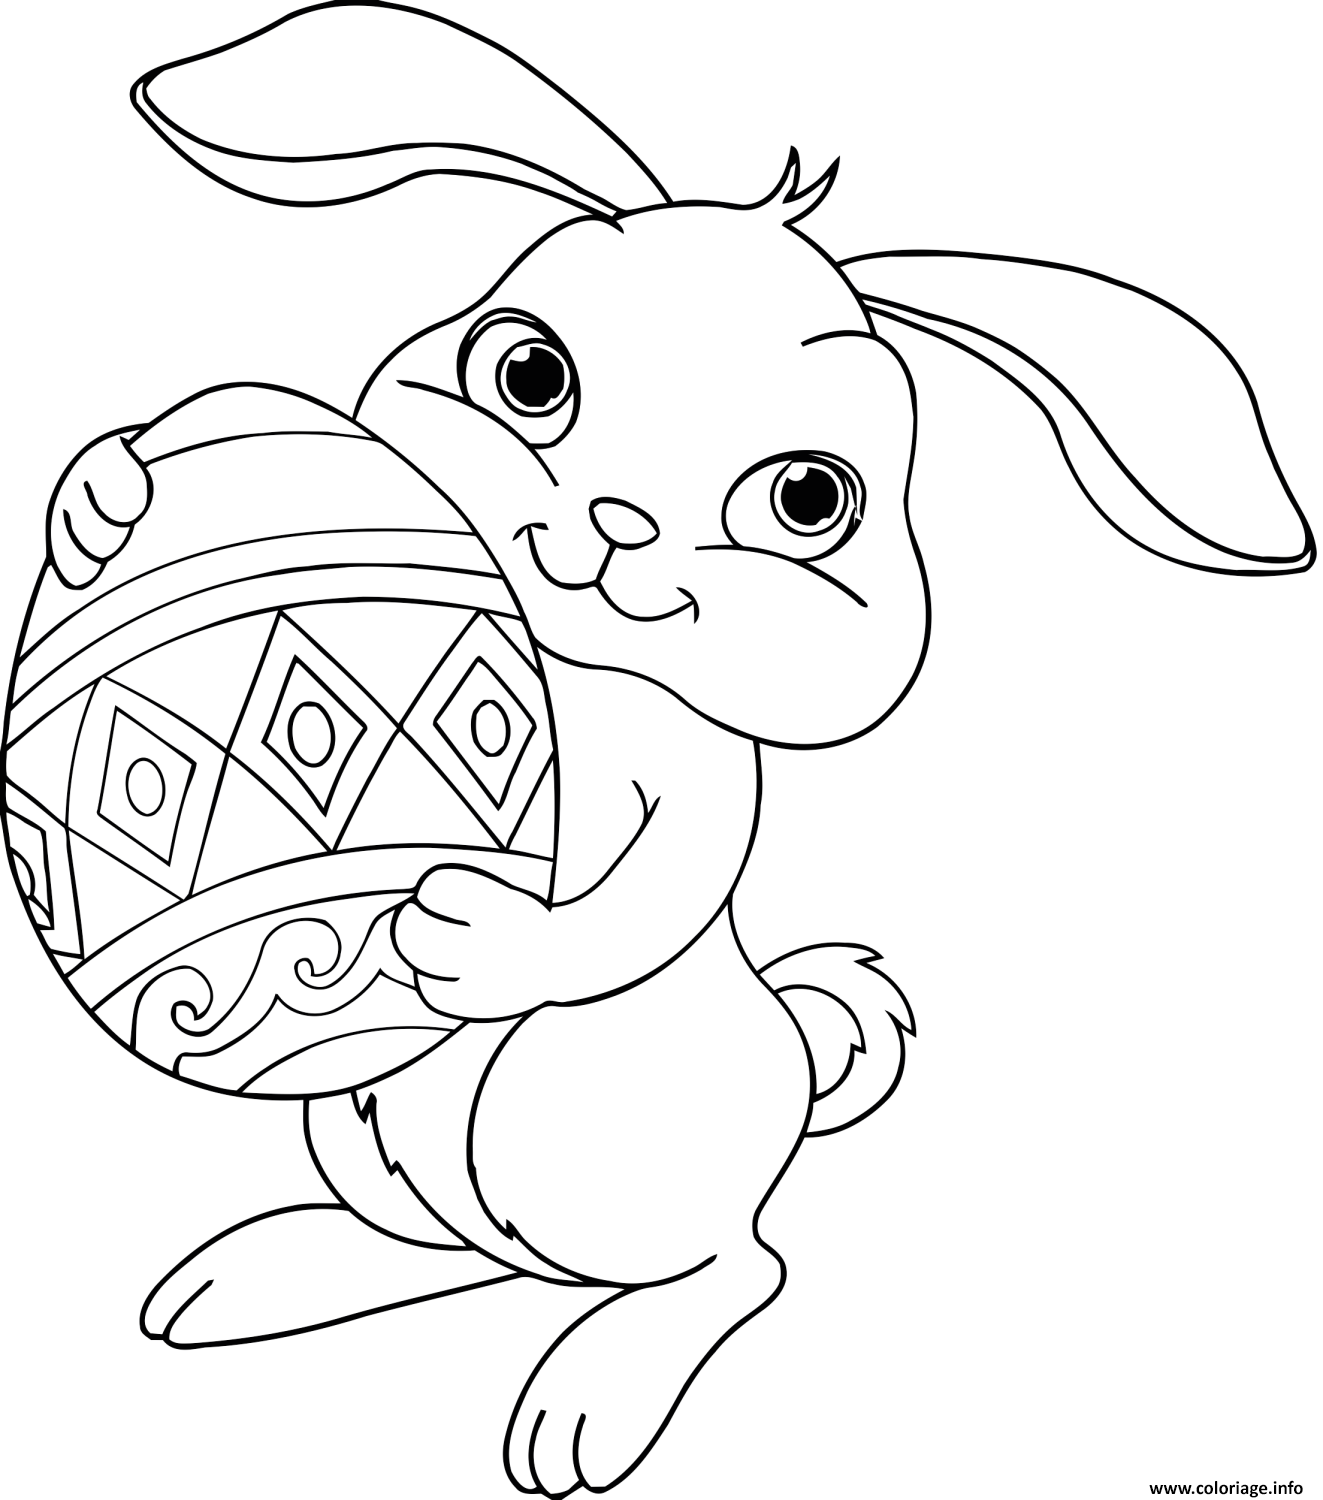 coloriage lapin paques disney dessin imprimer cartes pinterest lapin paques coloriage. Black Bedroom Furniture Sets. Home Design Ideas